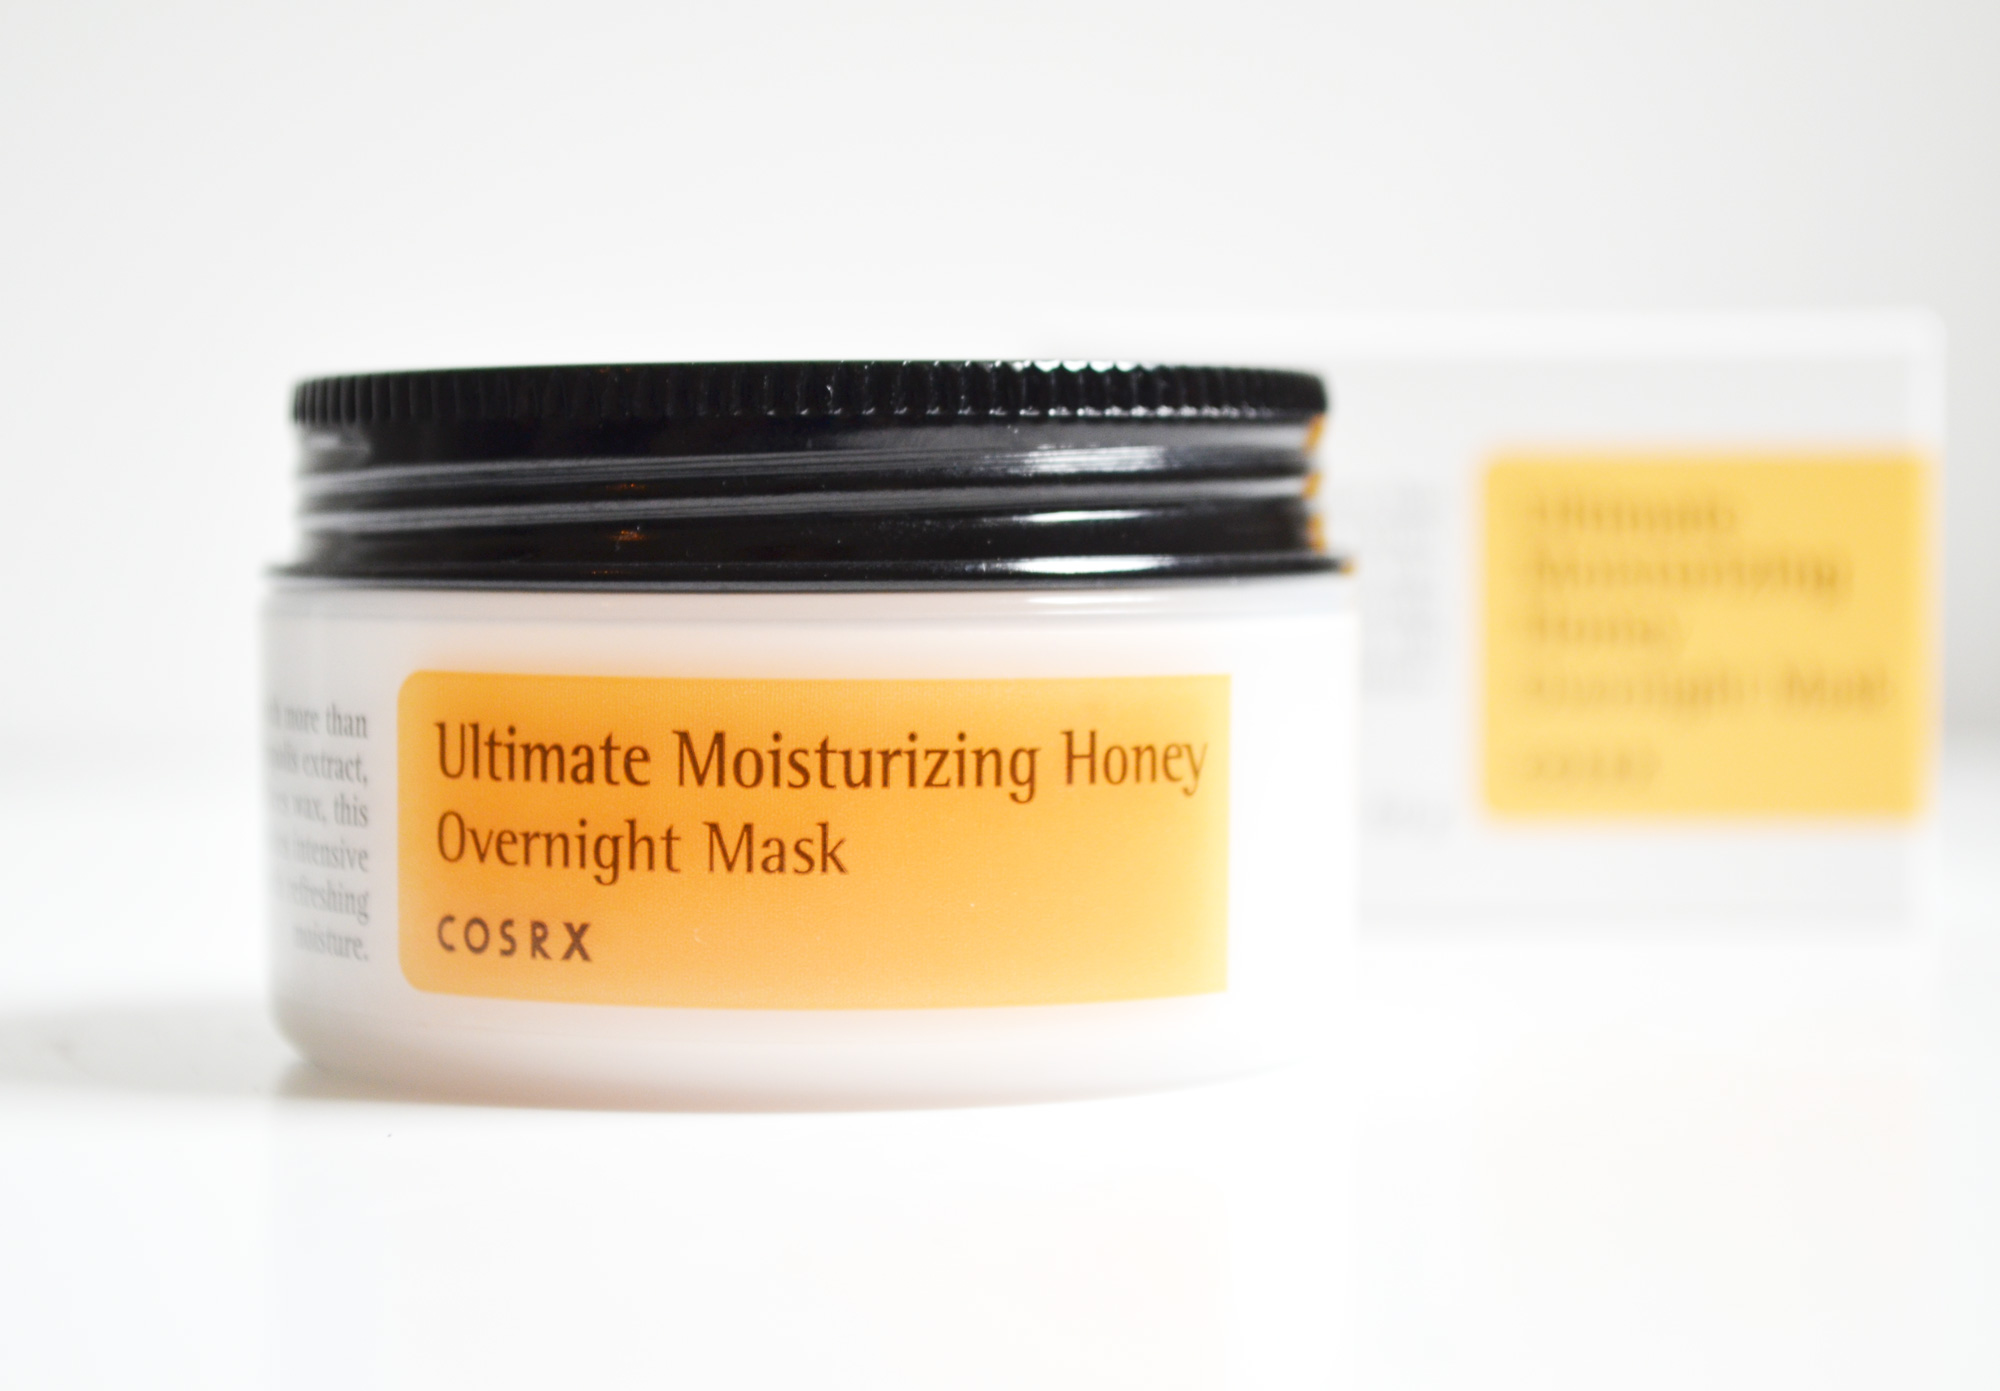 Cosrx-Ultimate-Moisturizing-Honey-Overnight-Mask-avis-revue